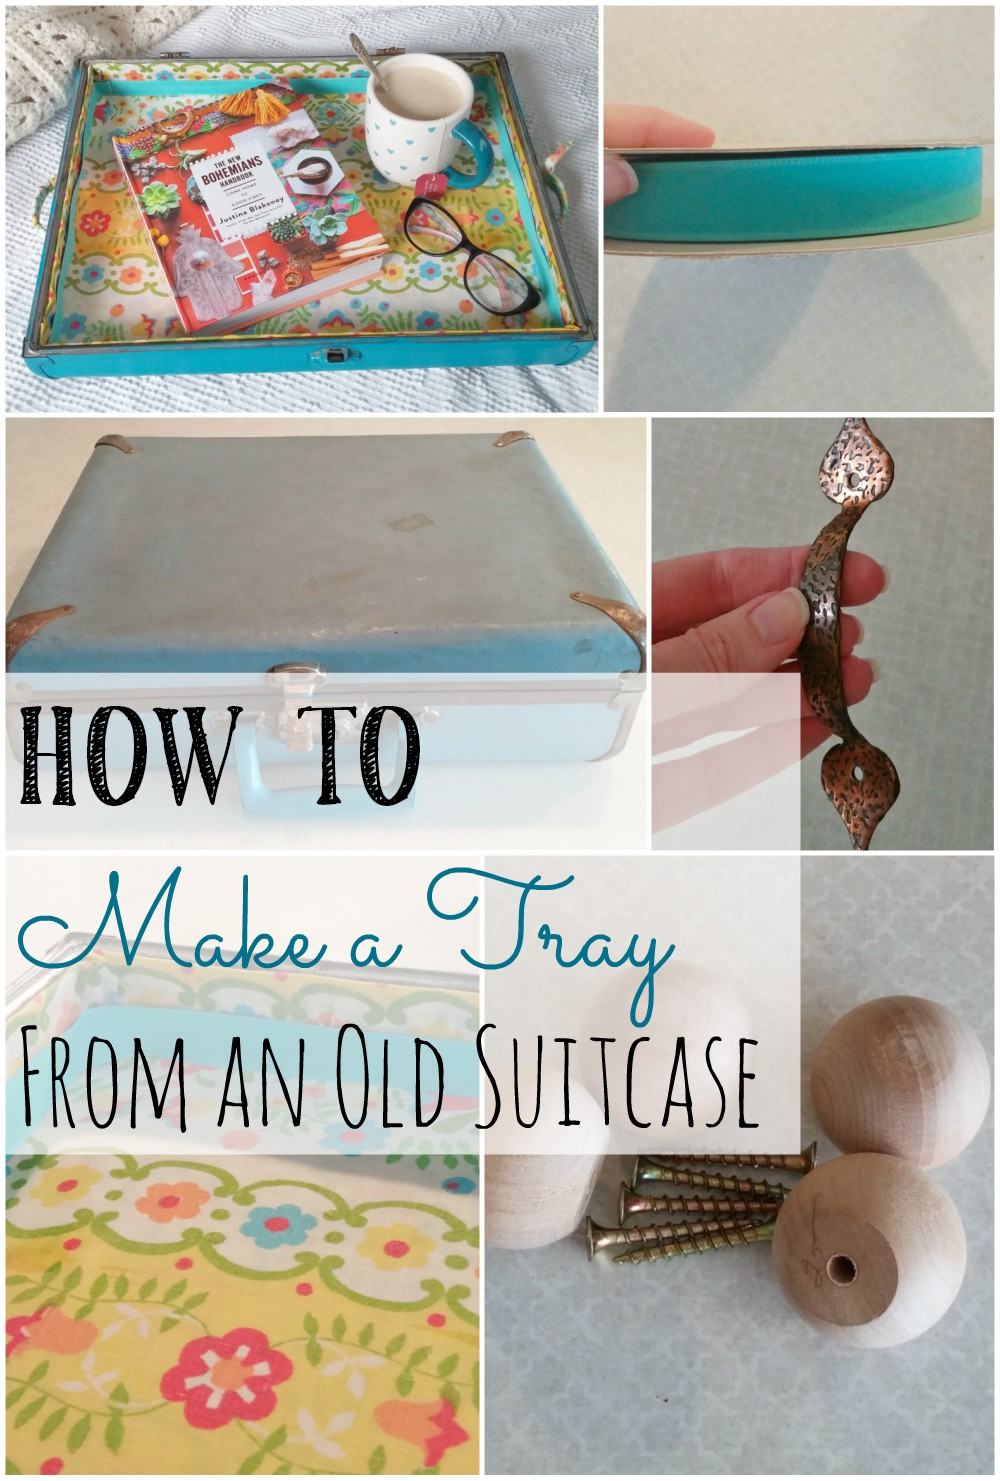 How to make a tray from an old suitcase!